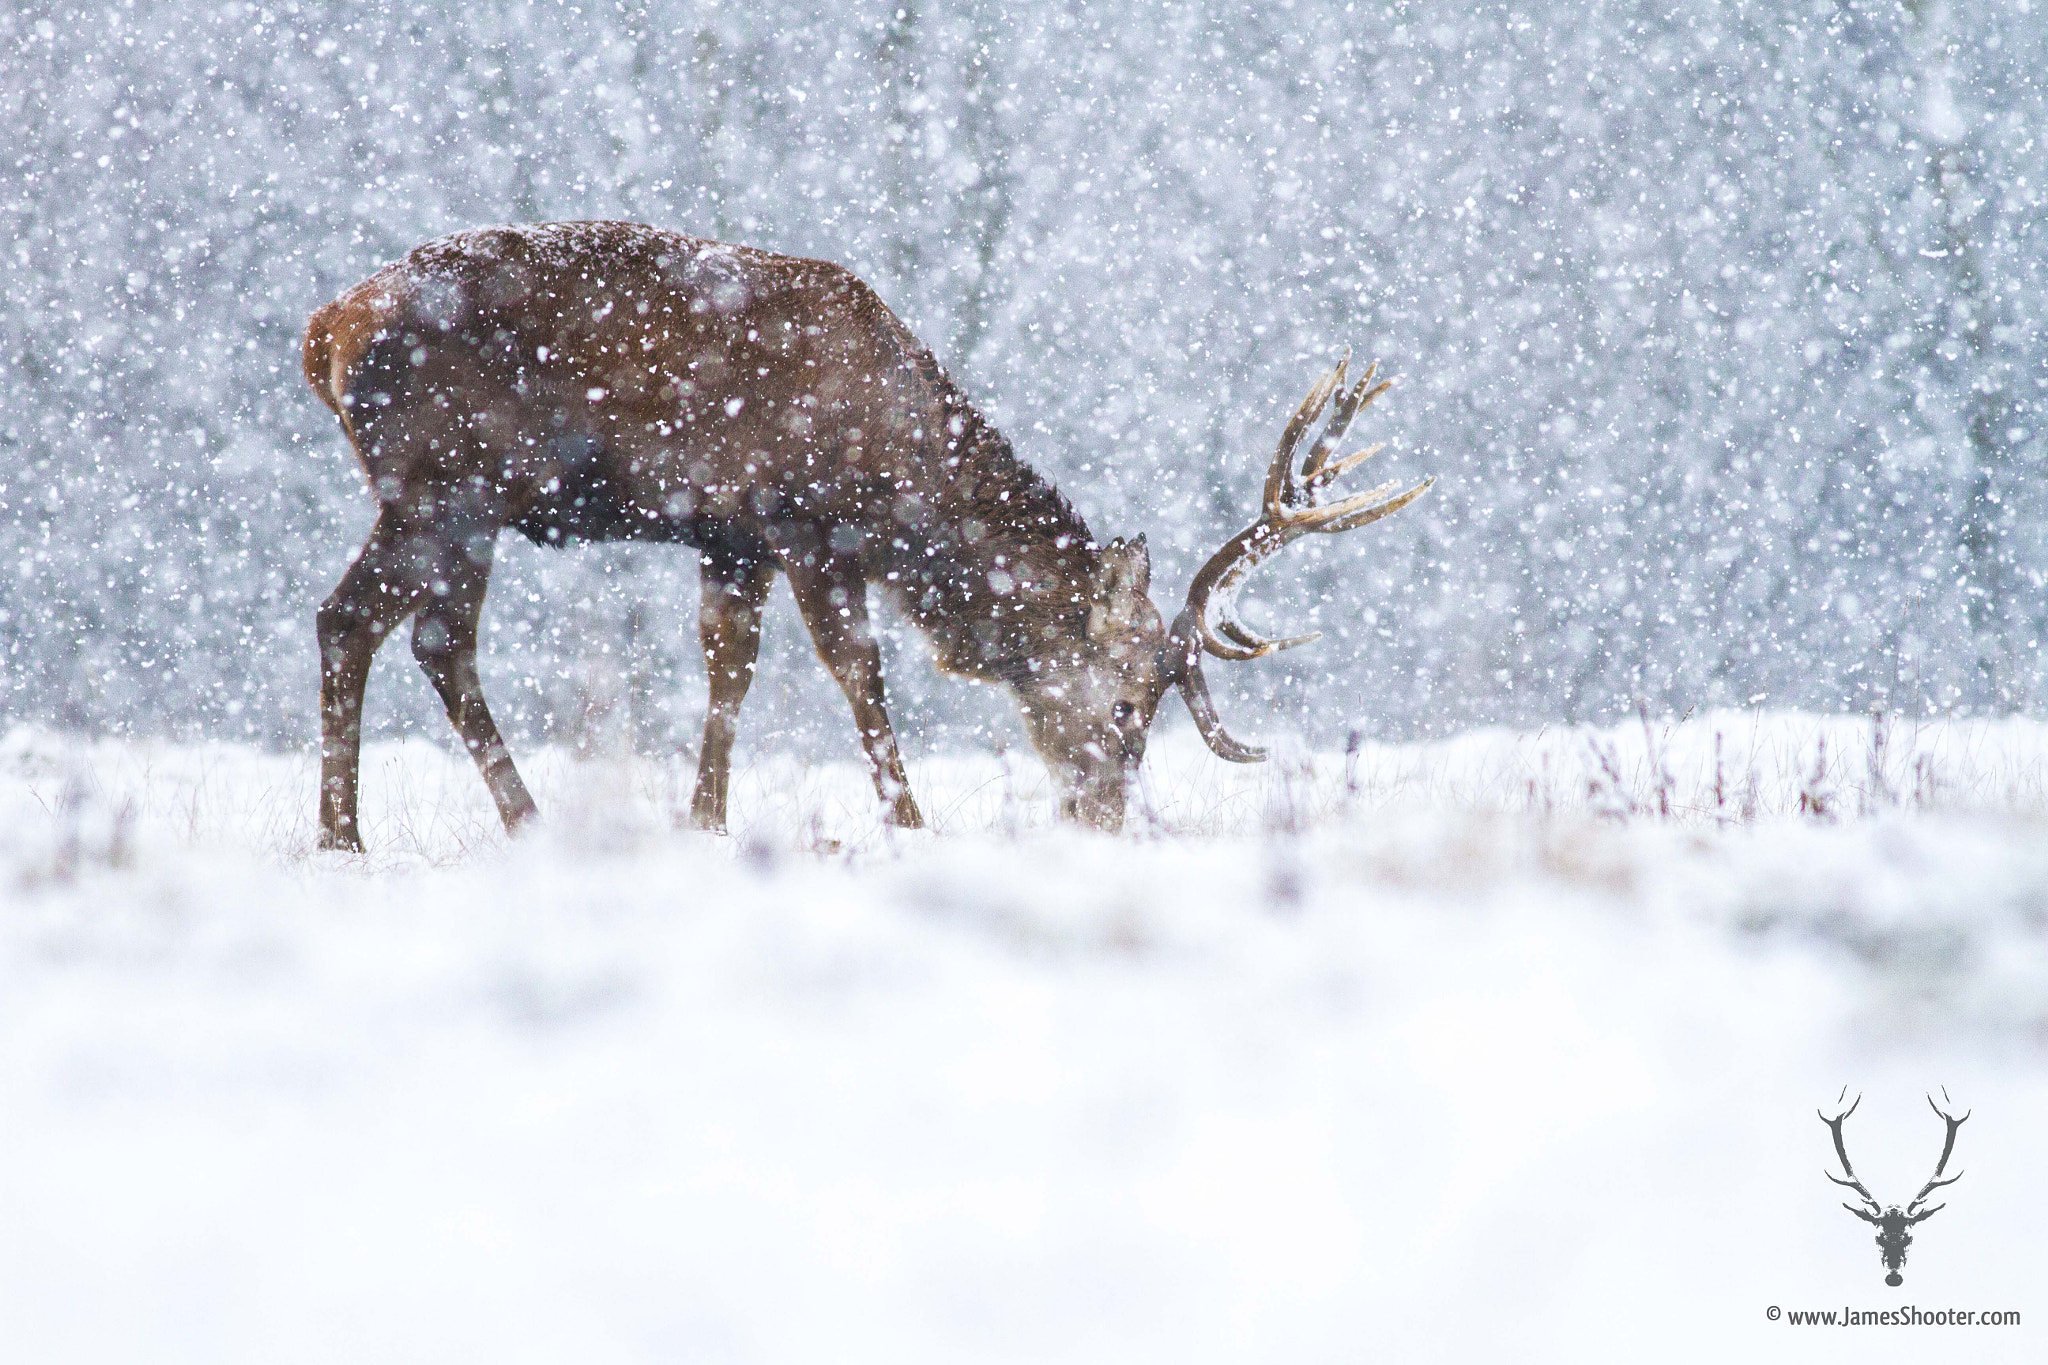 Photograph In a Flurry by James Shooter on 500px